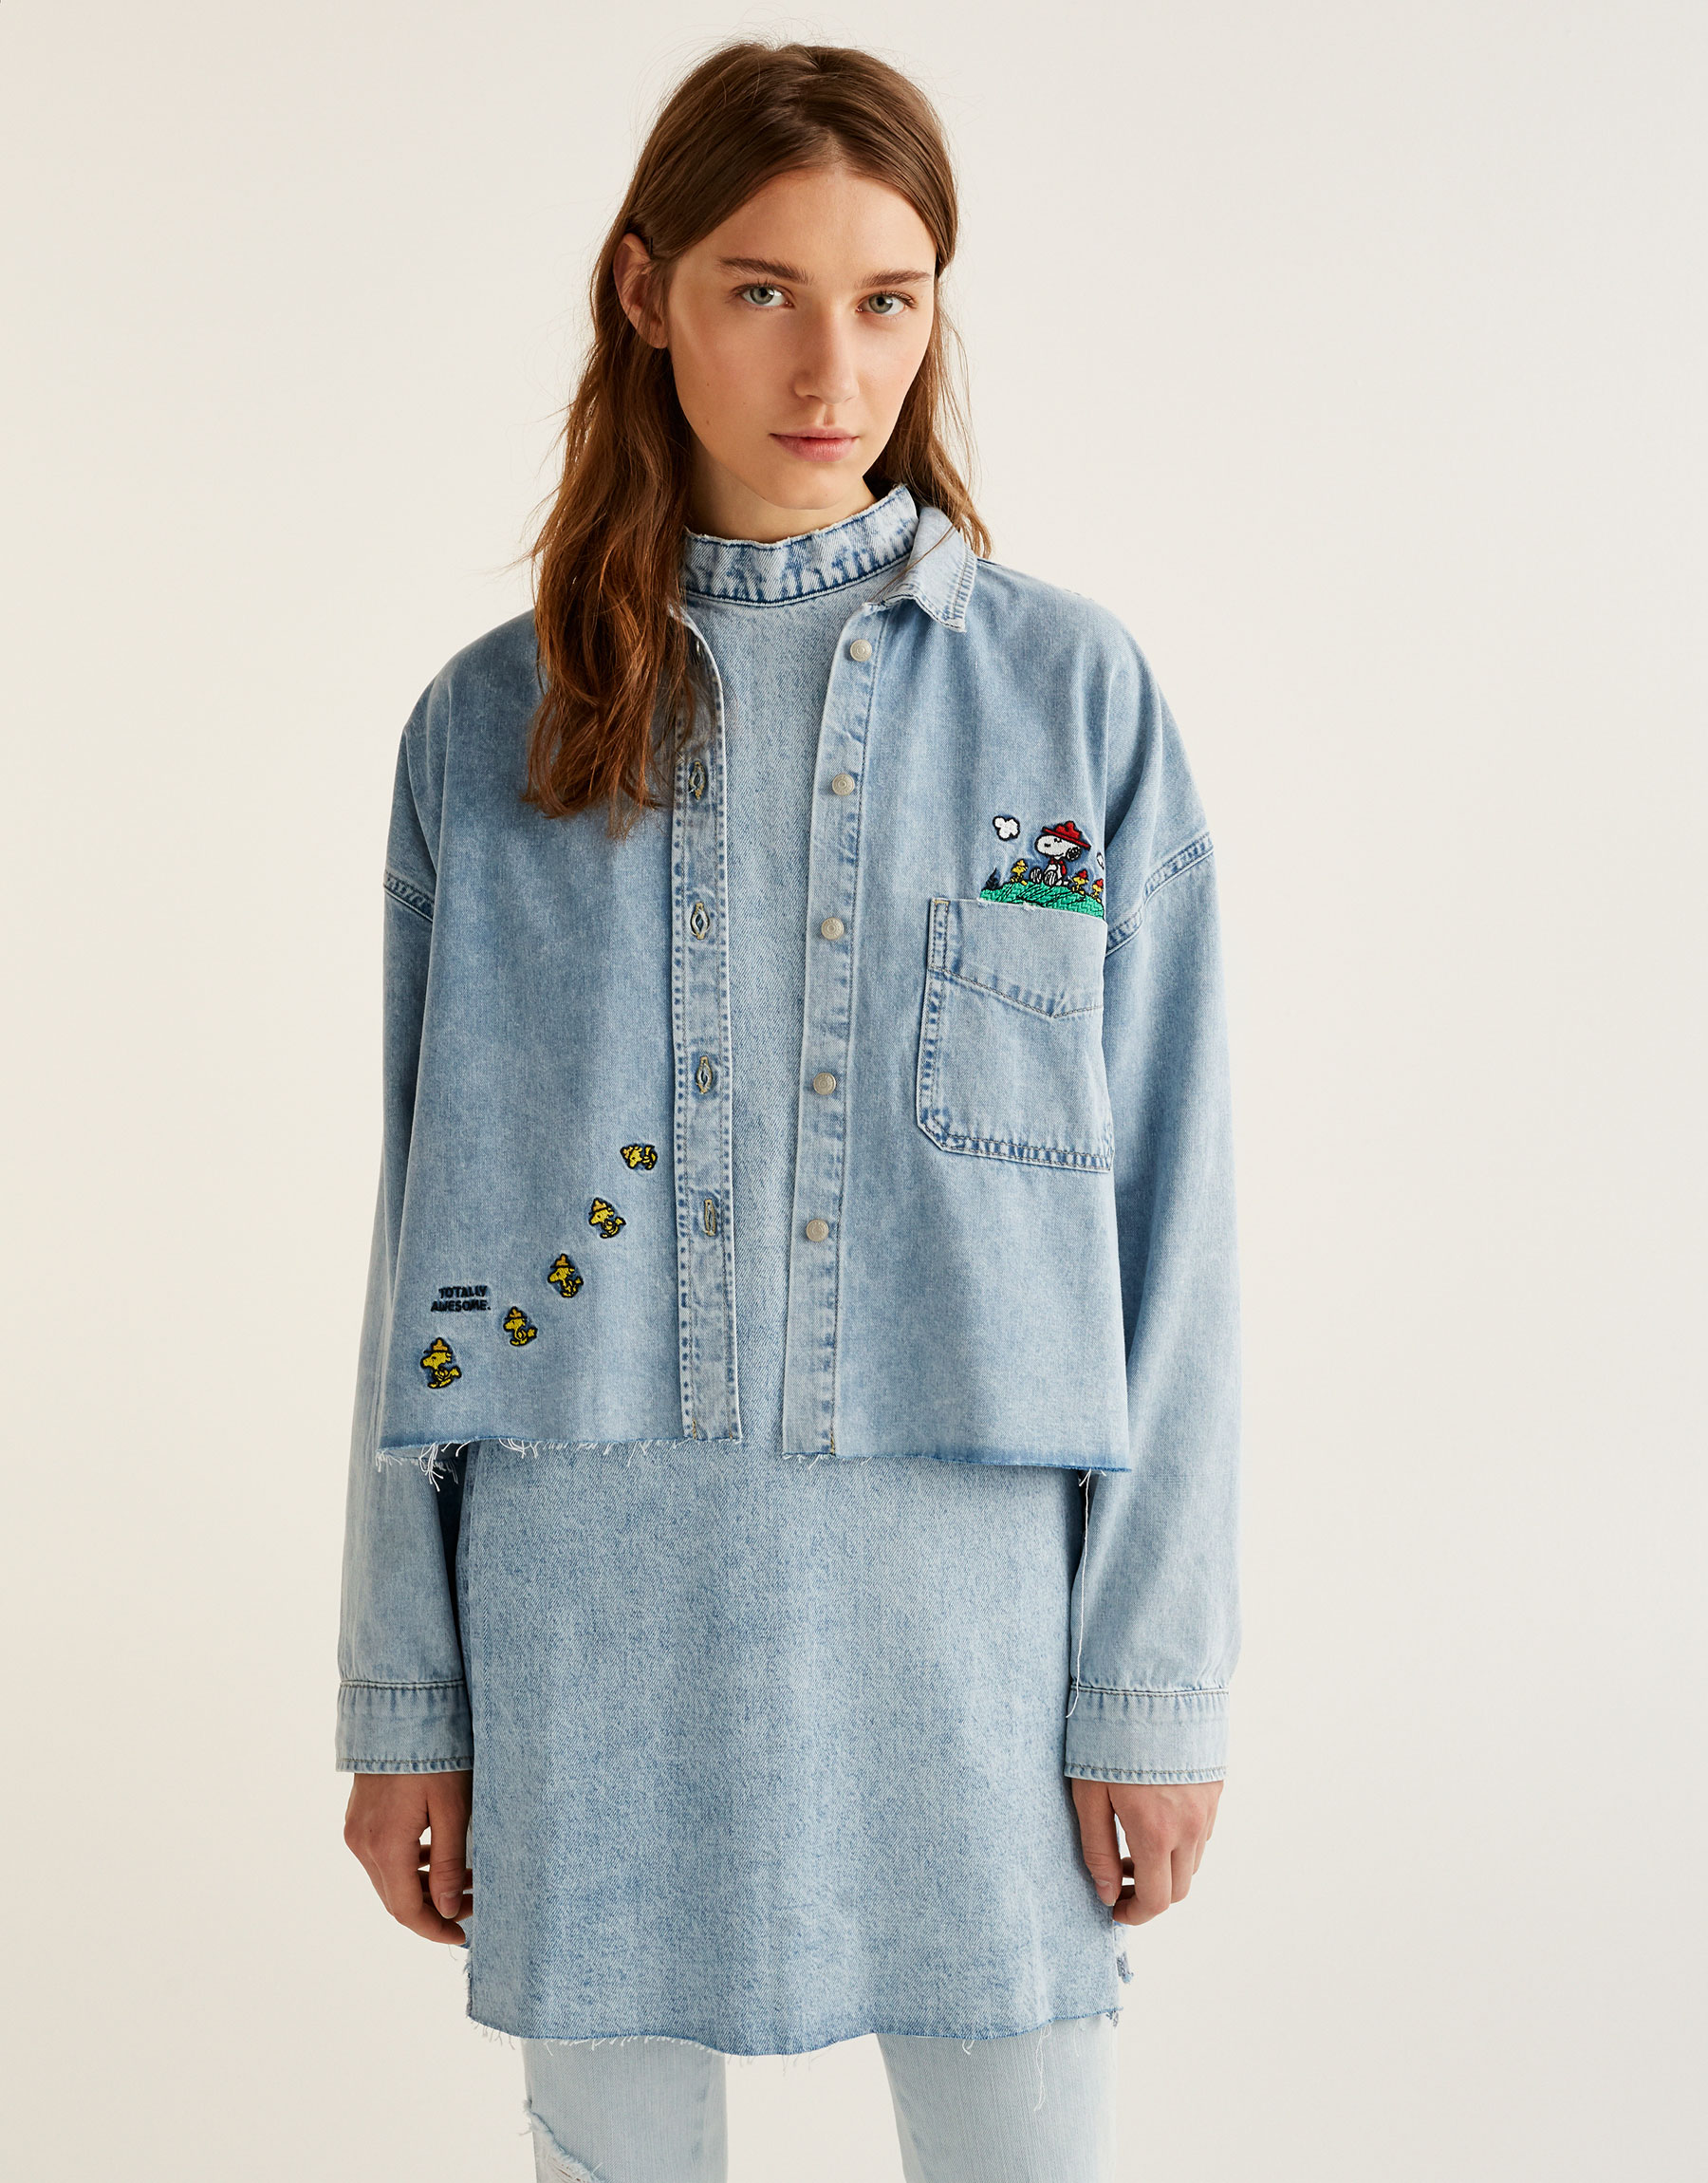 Denim Snoopy shirt